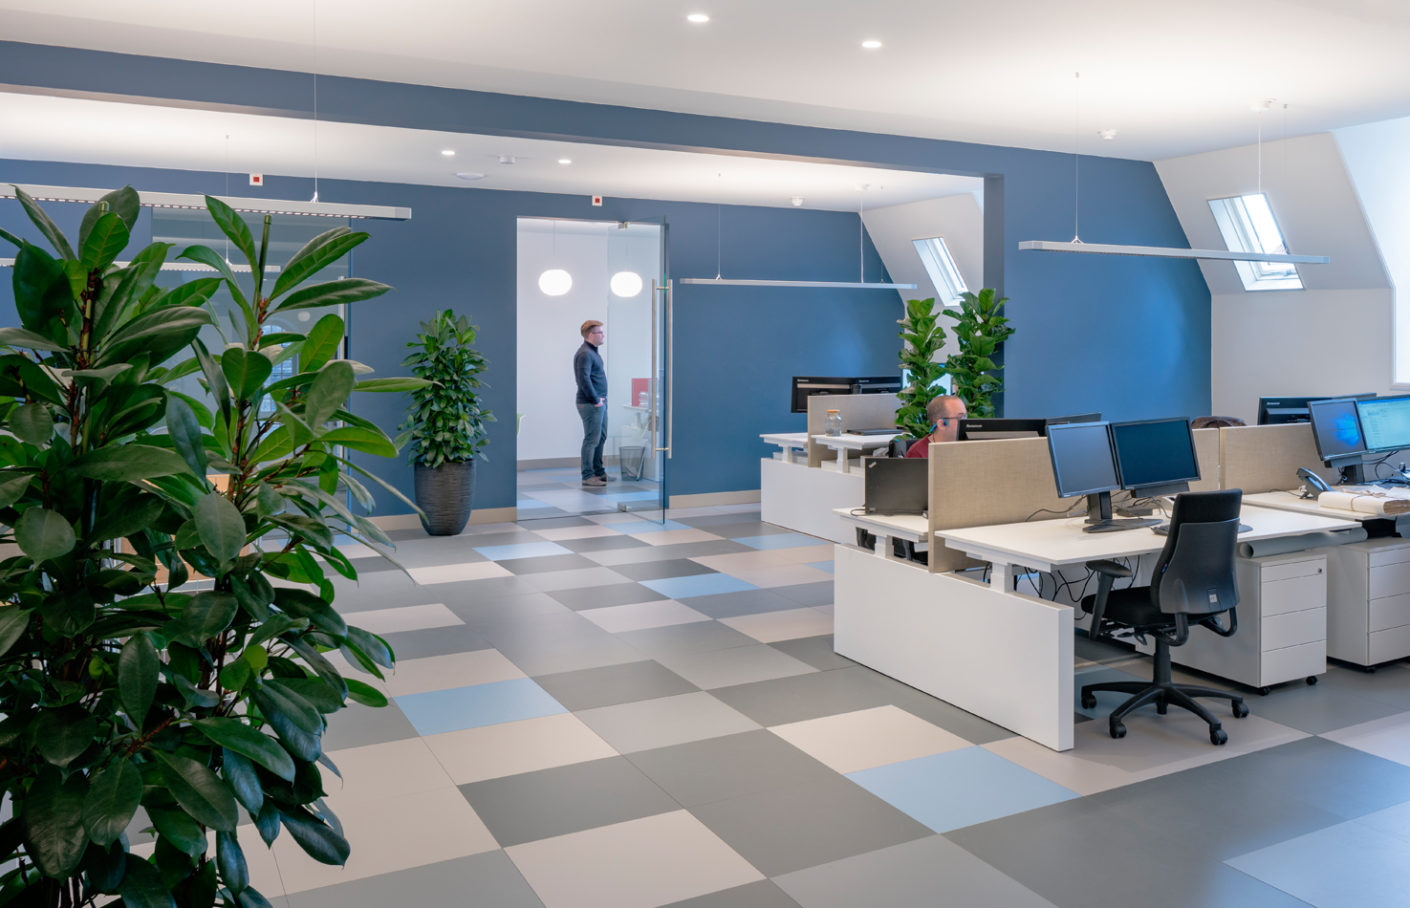 Matt gray blue in combination with noble gray tones creates a quiet working atmosphere in the offices and the reading room.